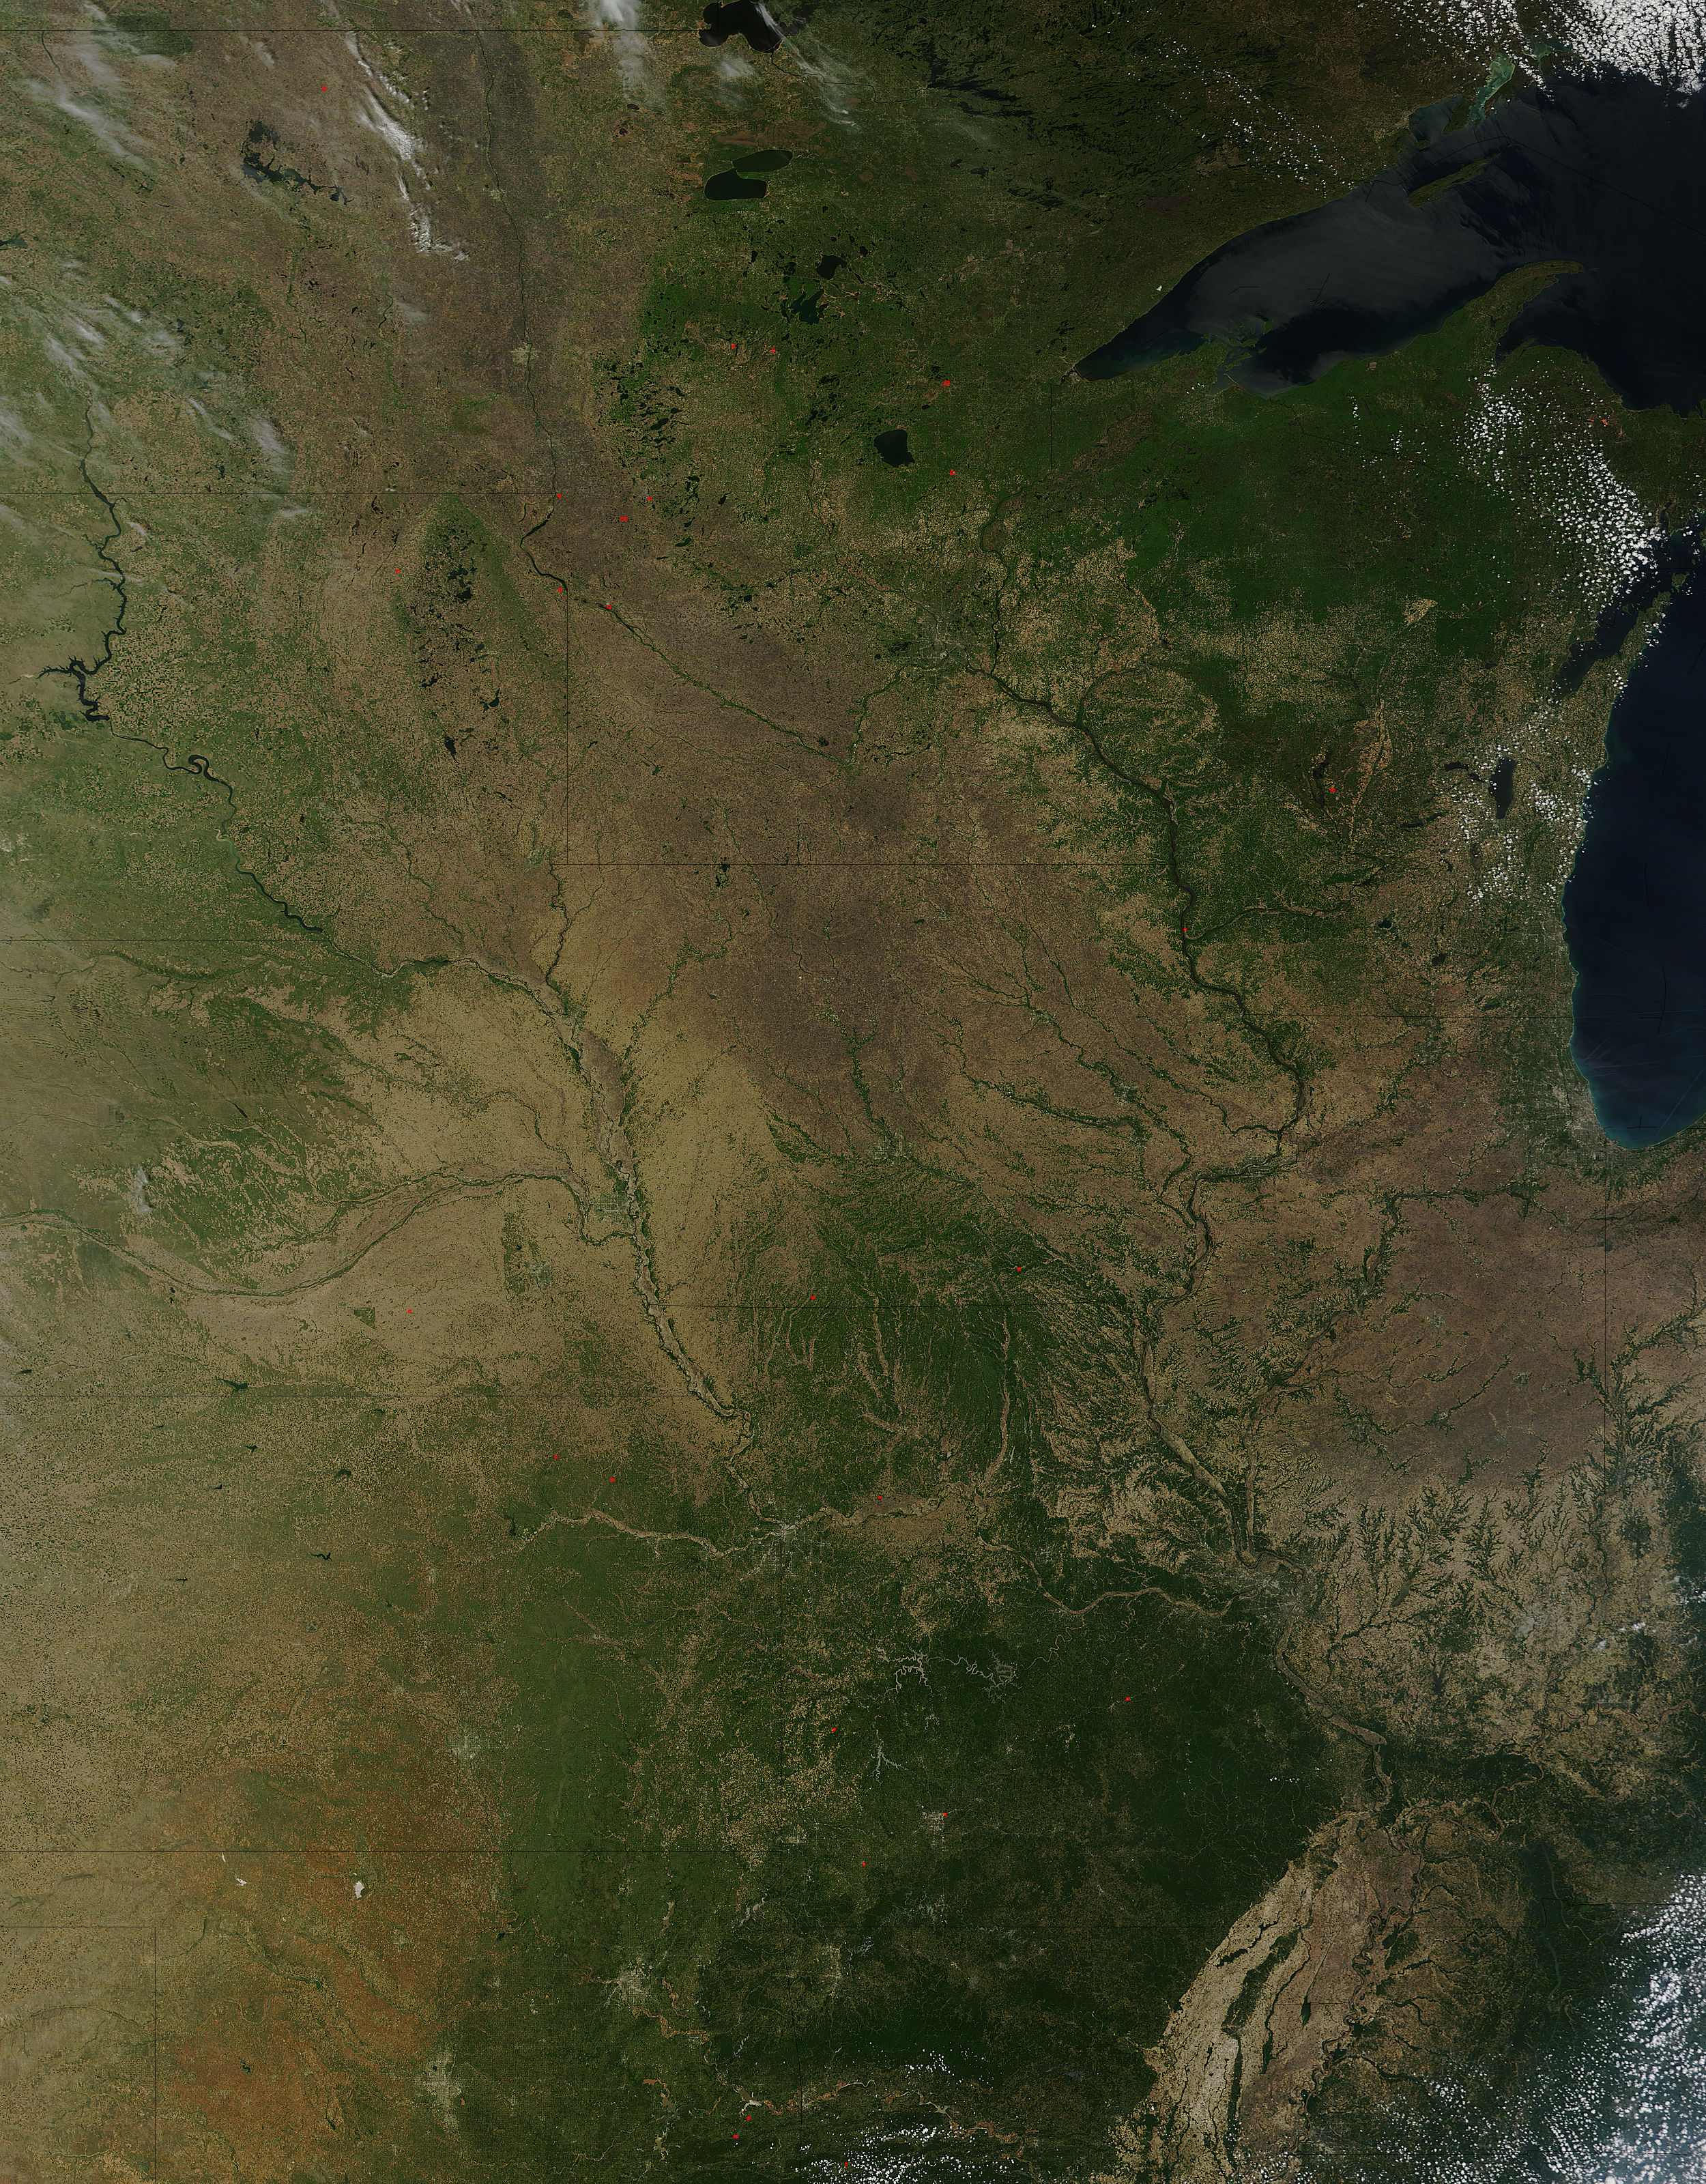 Nasa modis image of the day may 20 2012 upper midwest united